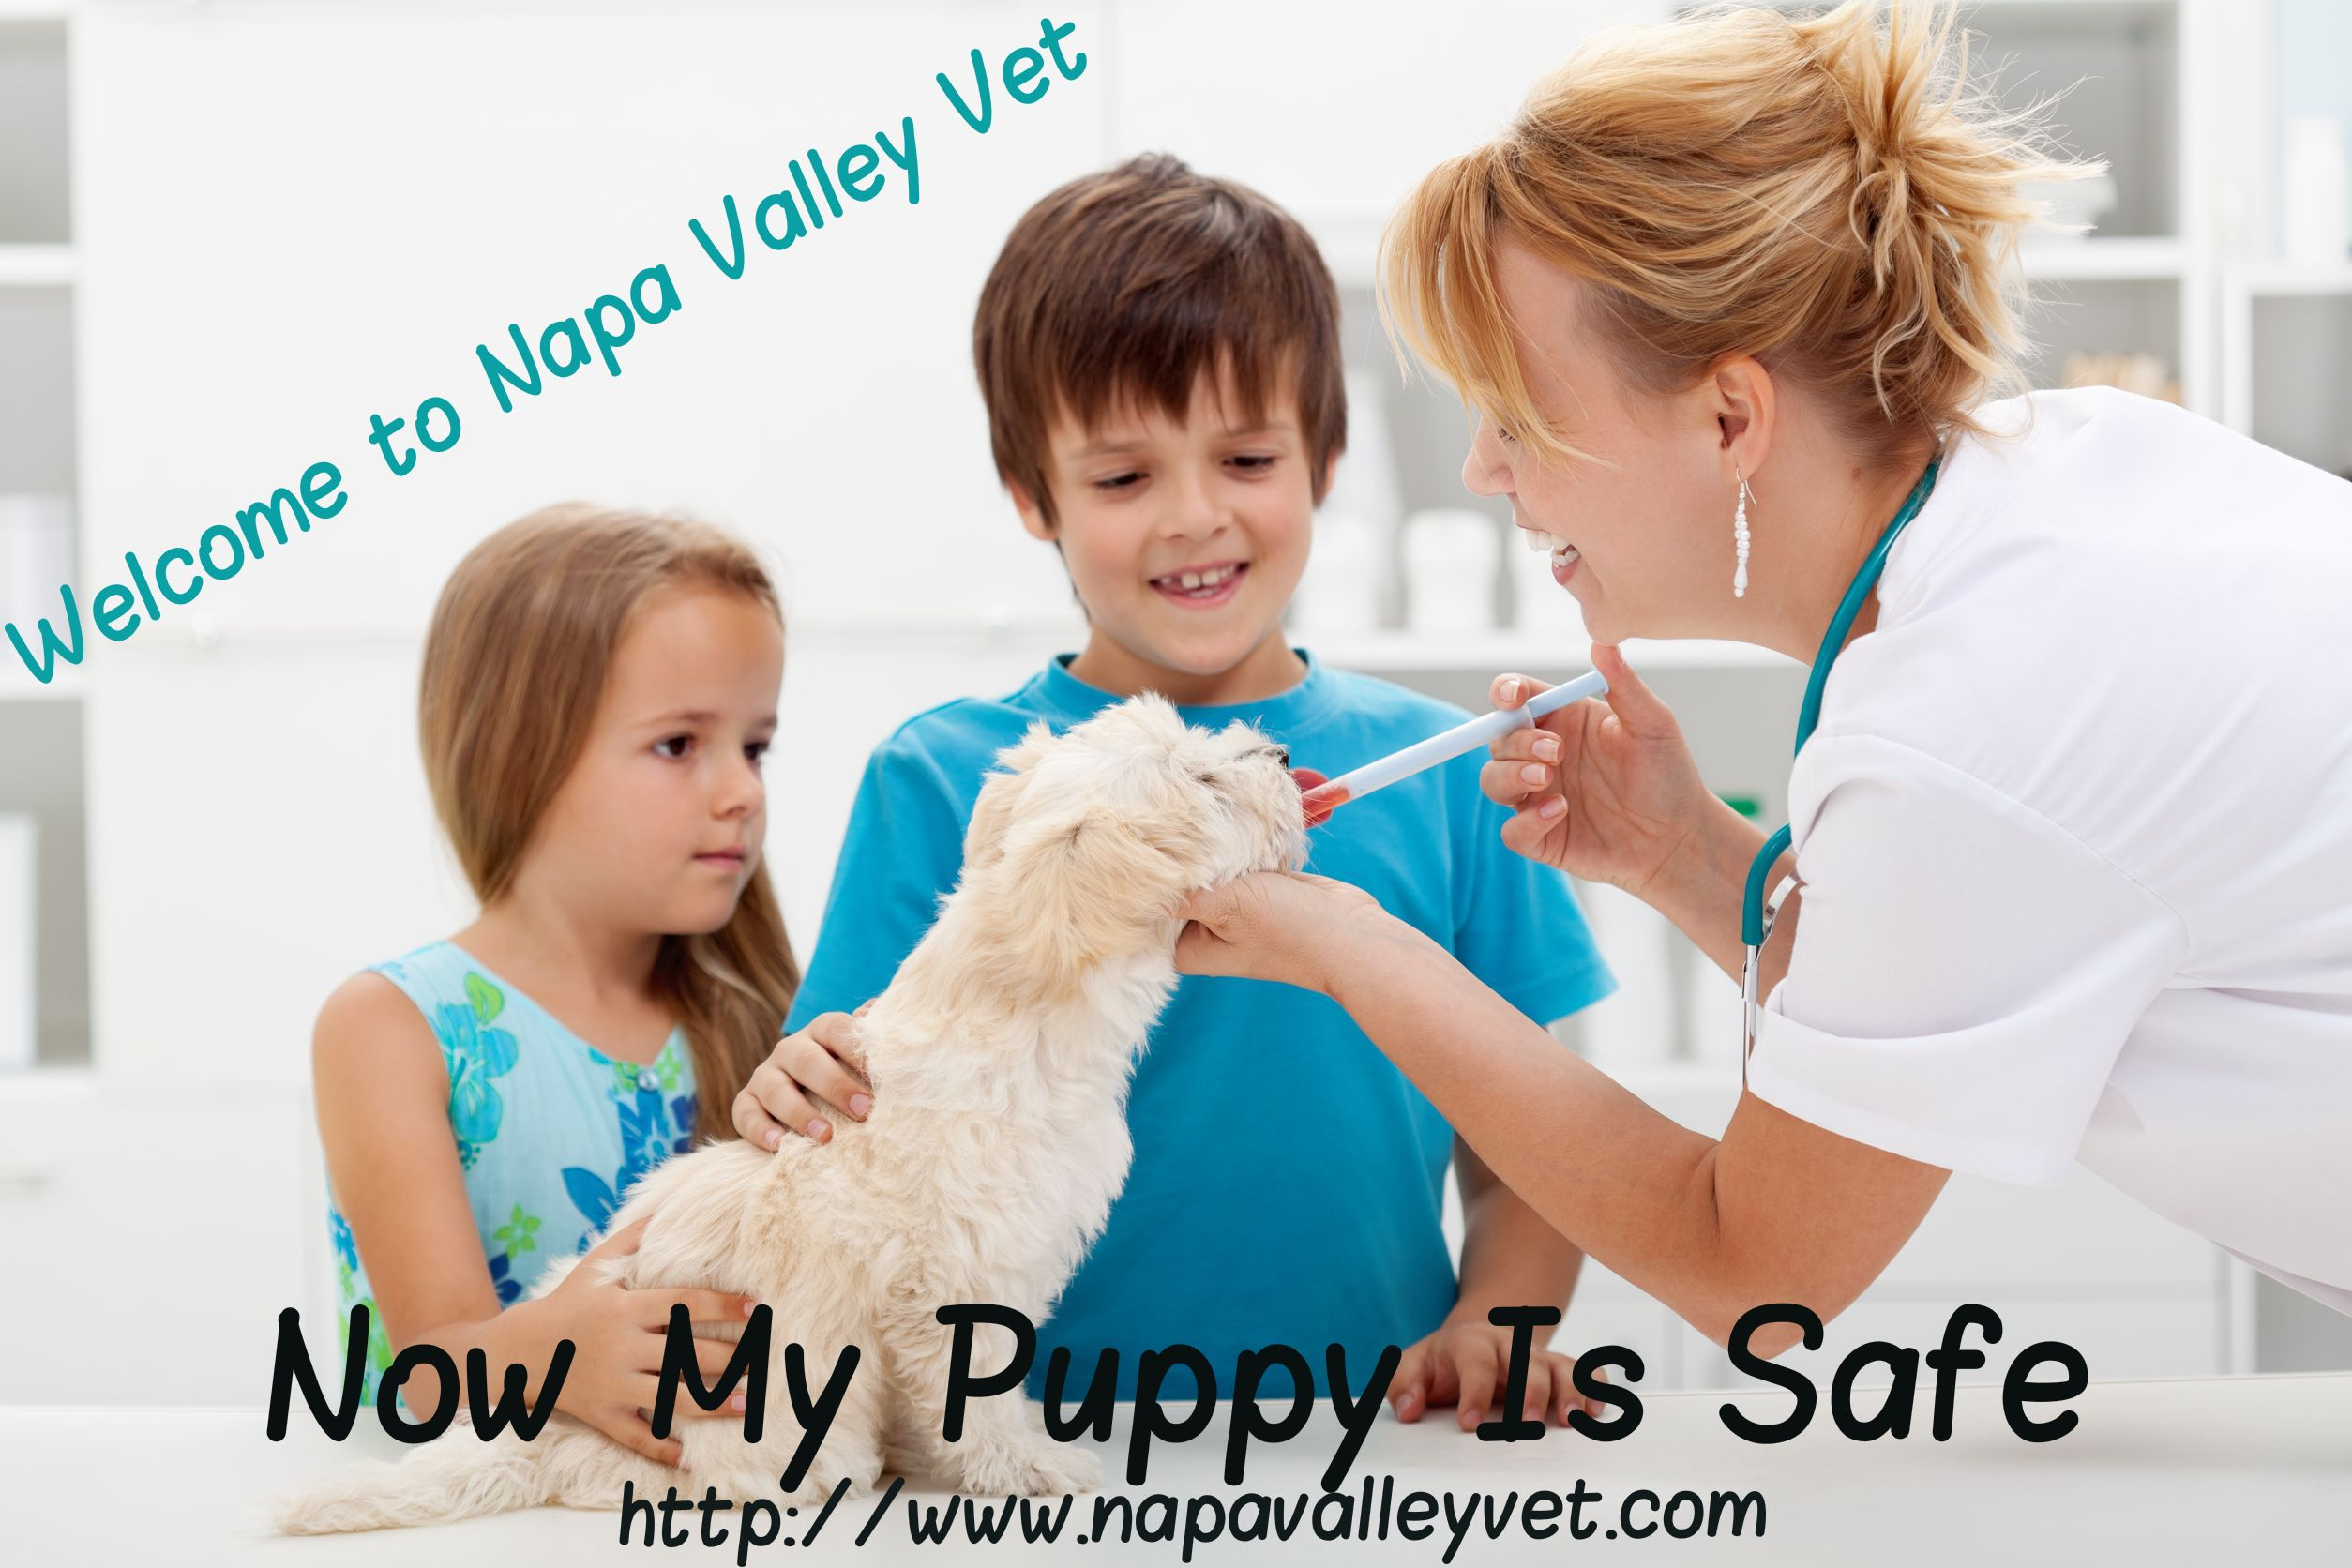 Our expert veterinarians provide complete dog and cat